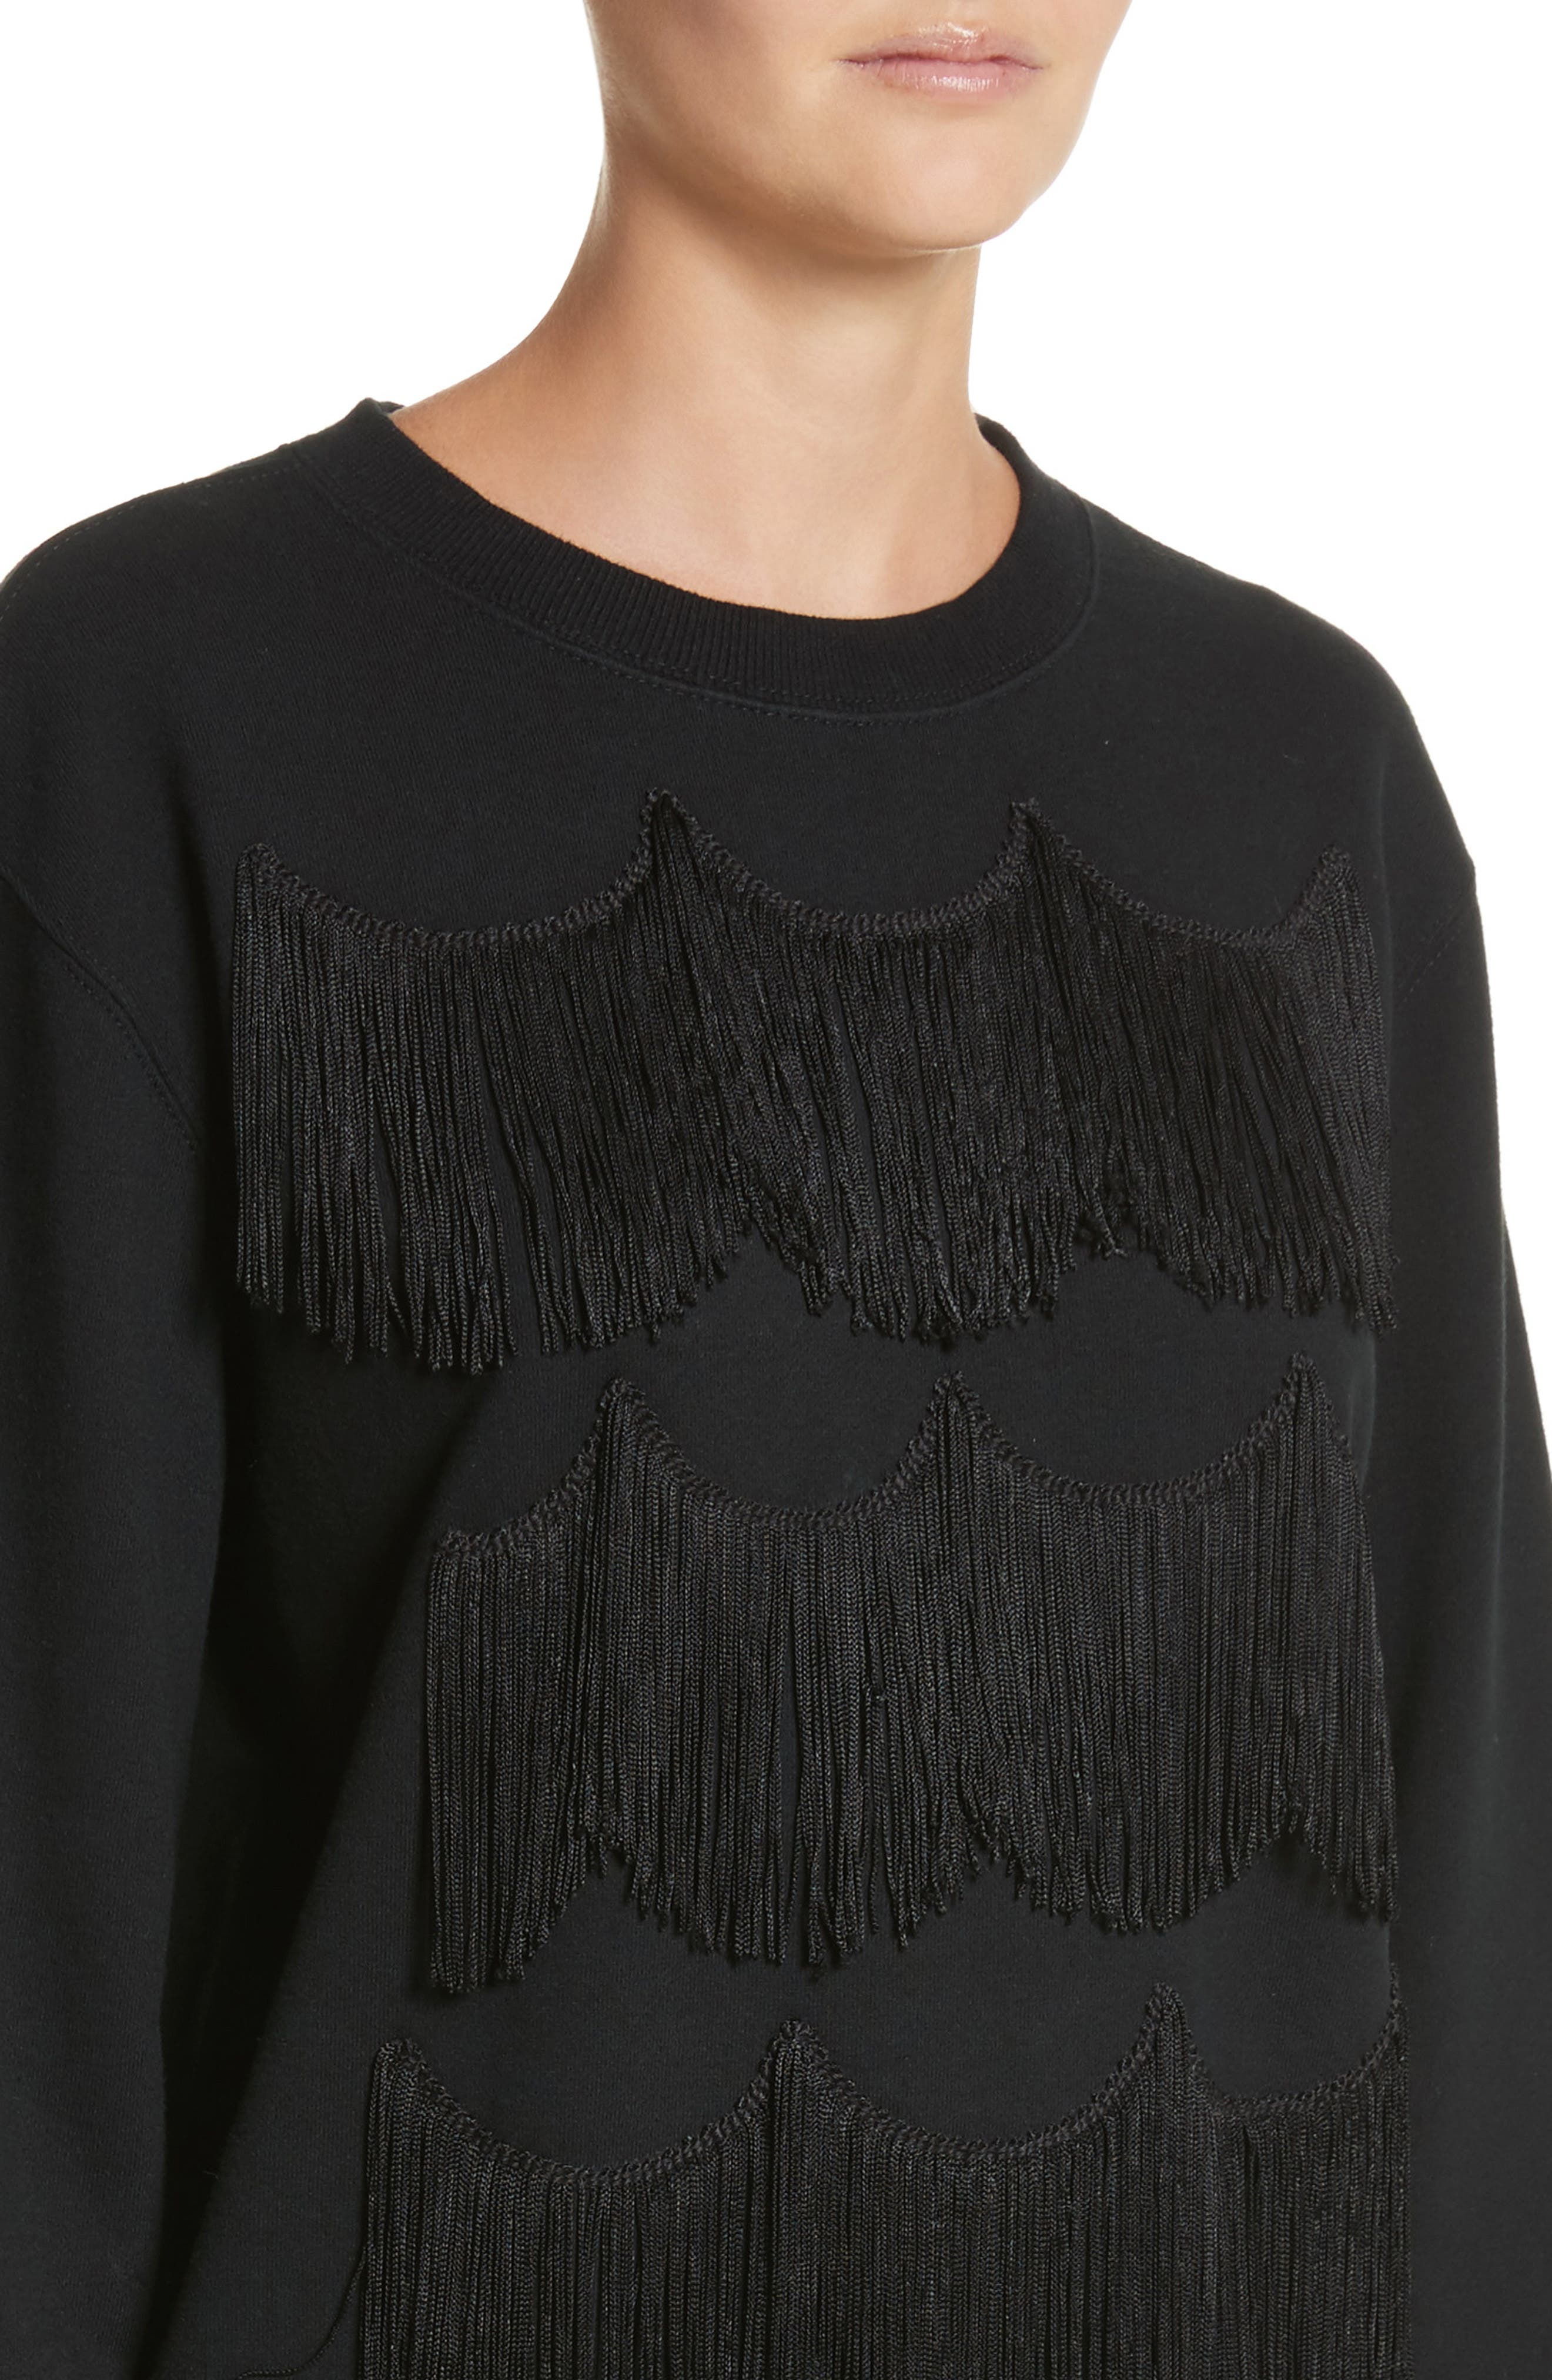 Alternate Image 4  - MARC JACOBS Fringe Cotton Sweatshirt